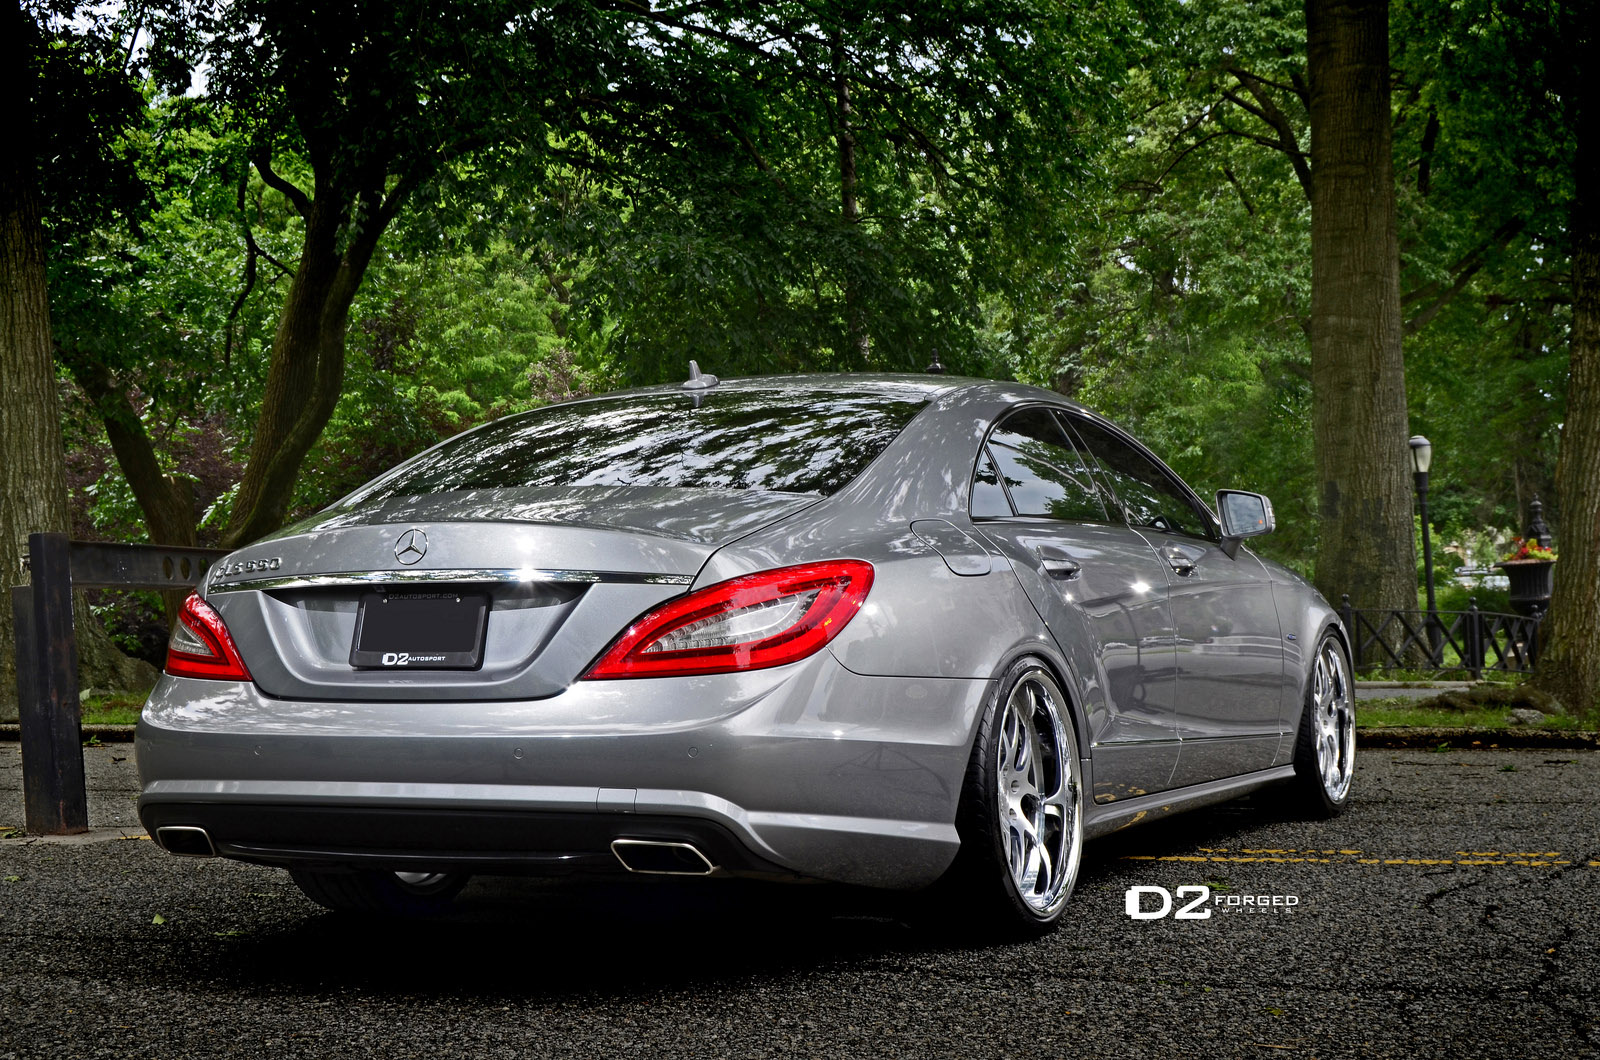 D2forged Mercedes Benz Cls 550 Fms08 Picture 86803